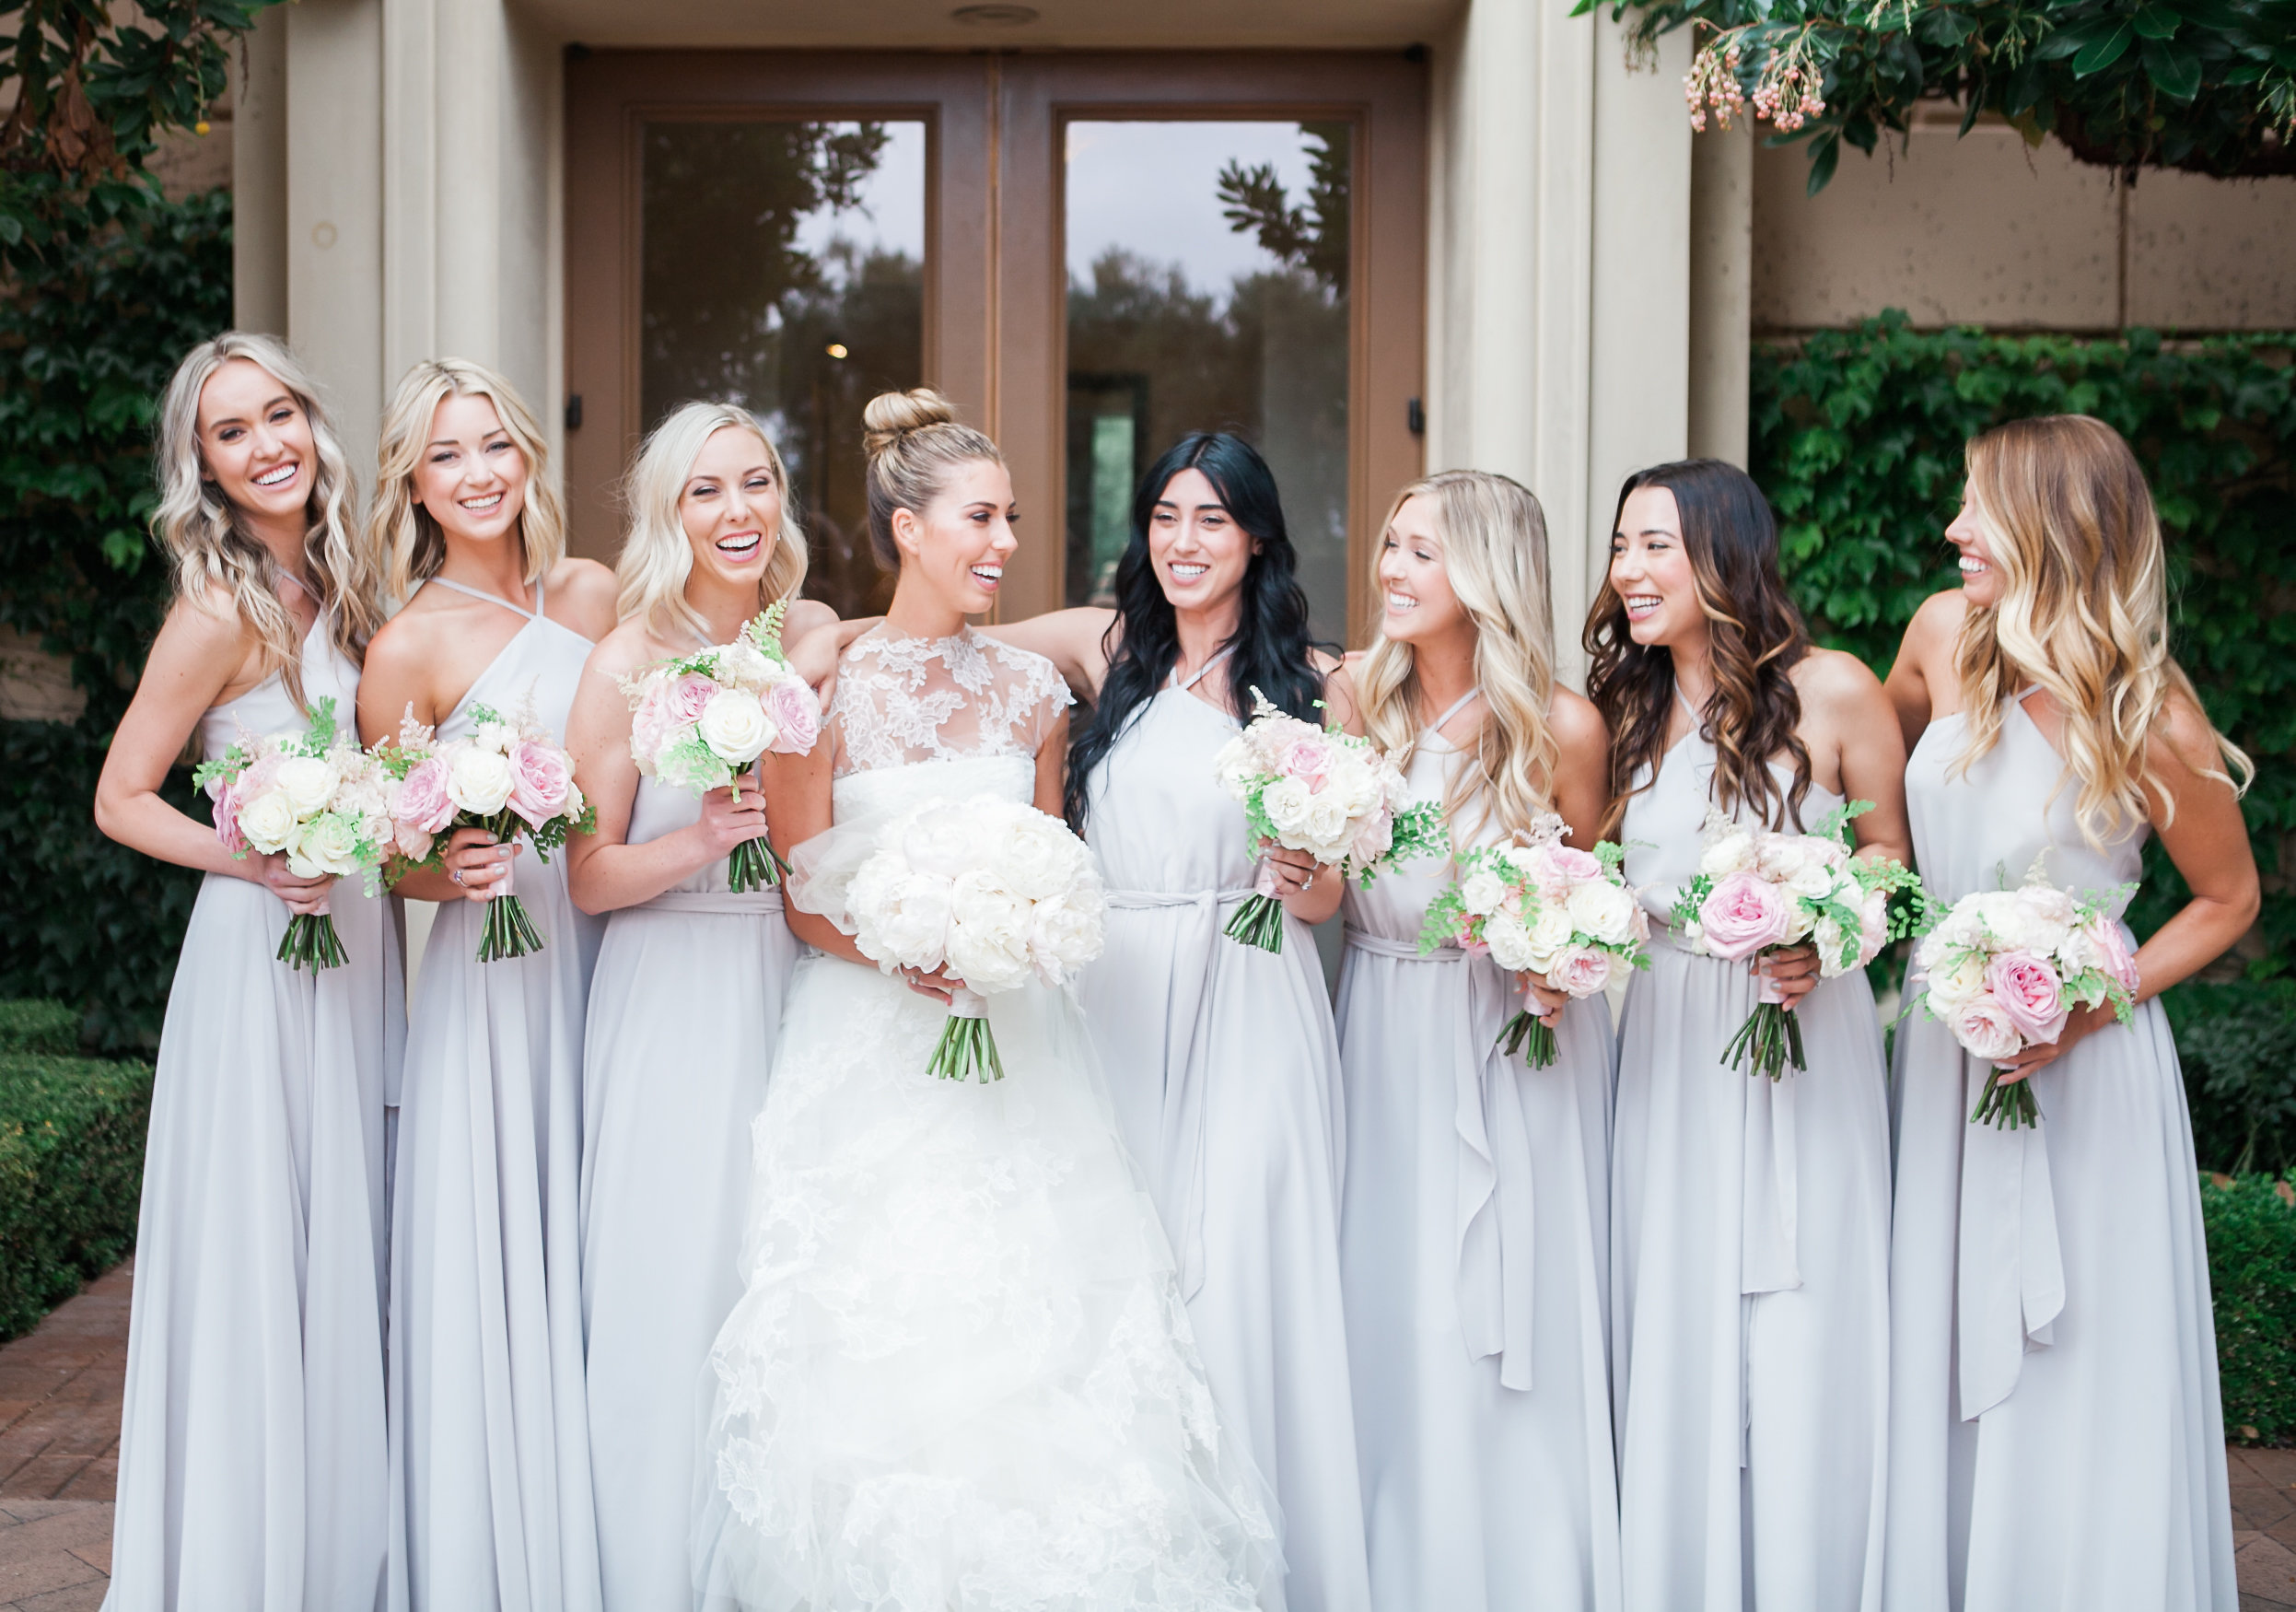 NewportCoastWedding-KristinaLeePhotography-143